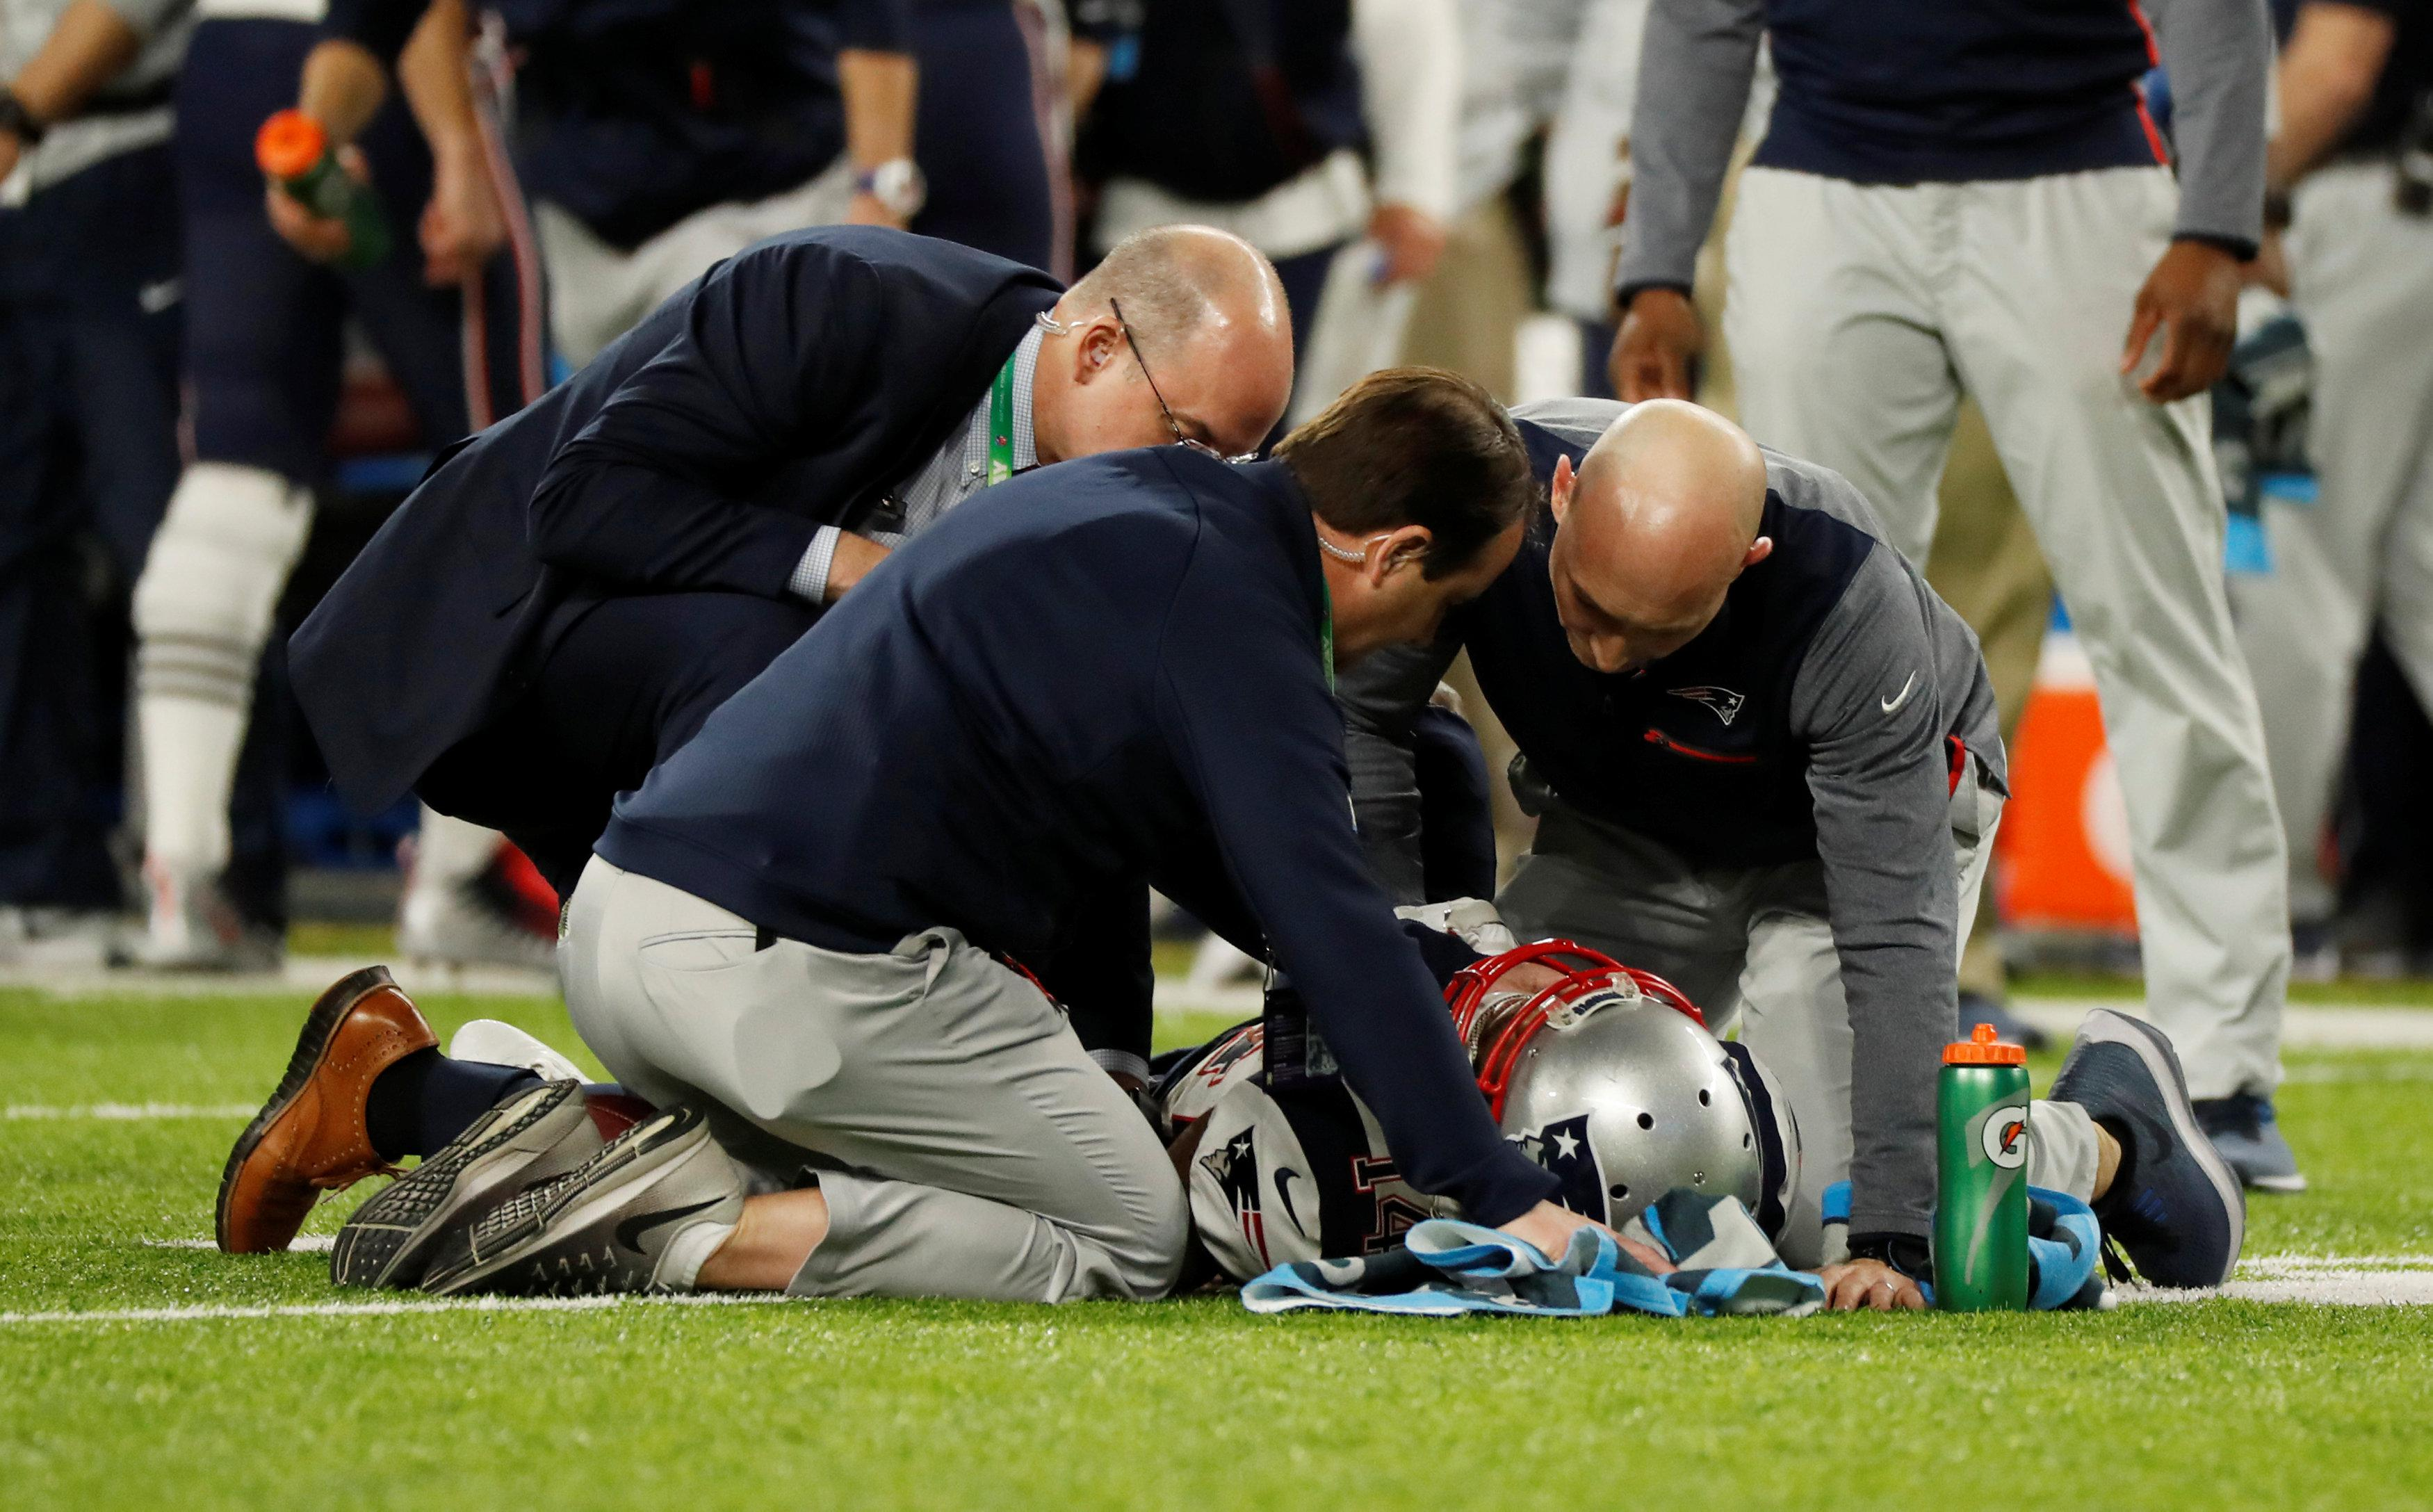 Brandin Cooks left the game with a head injury as a result of the hit and never returned